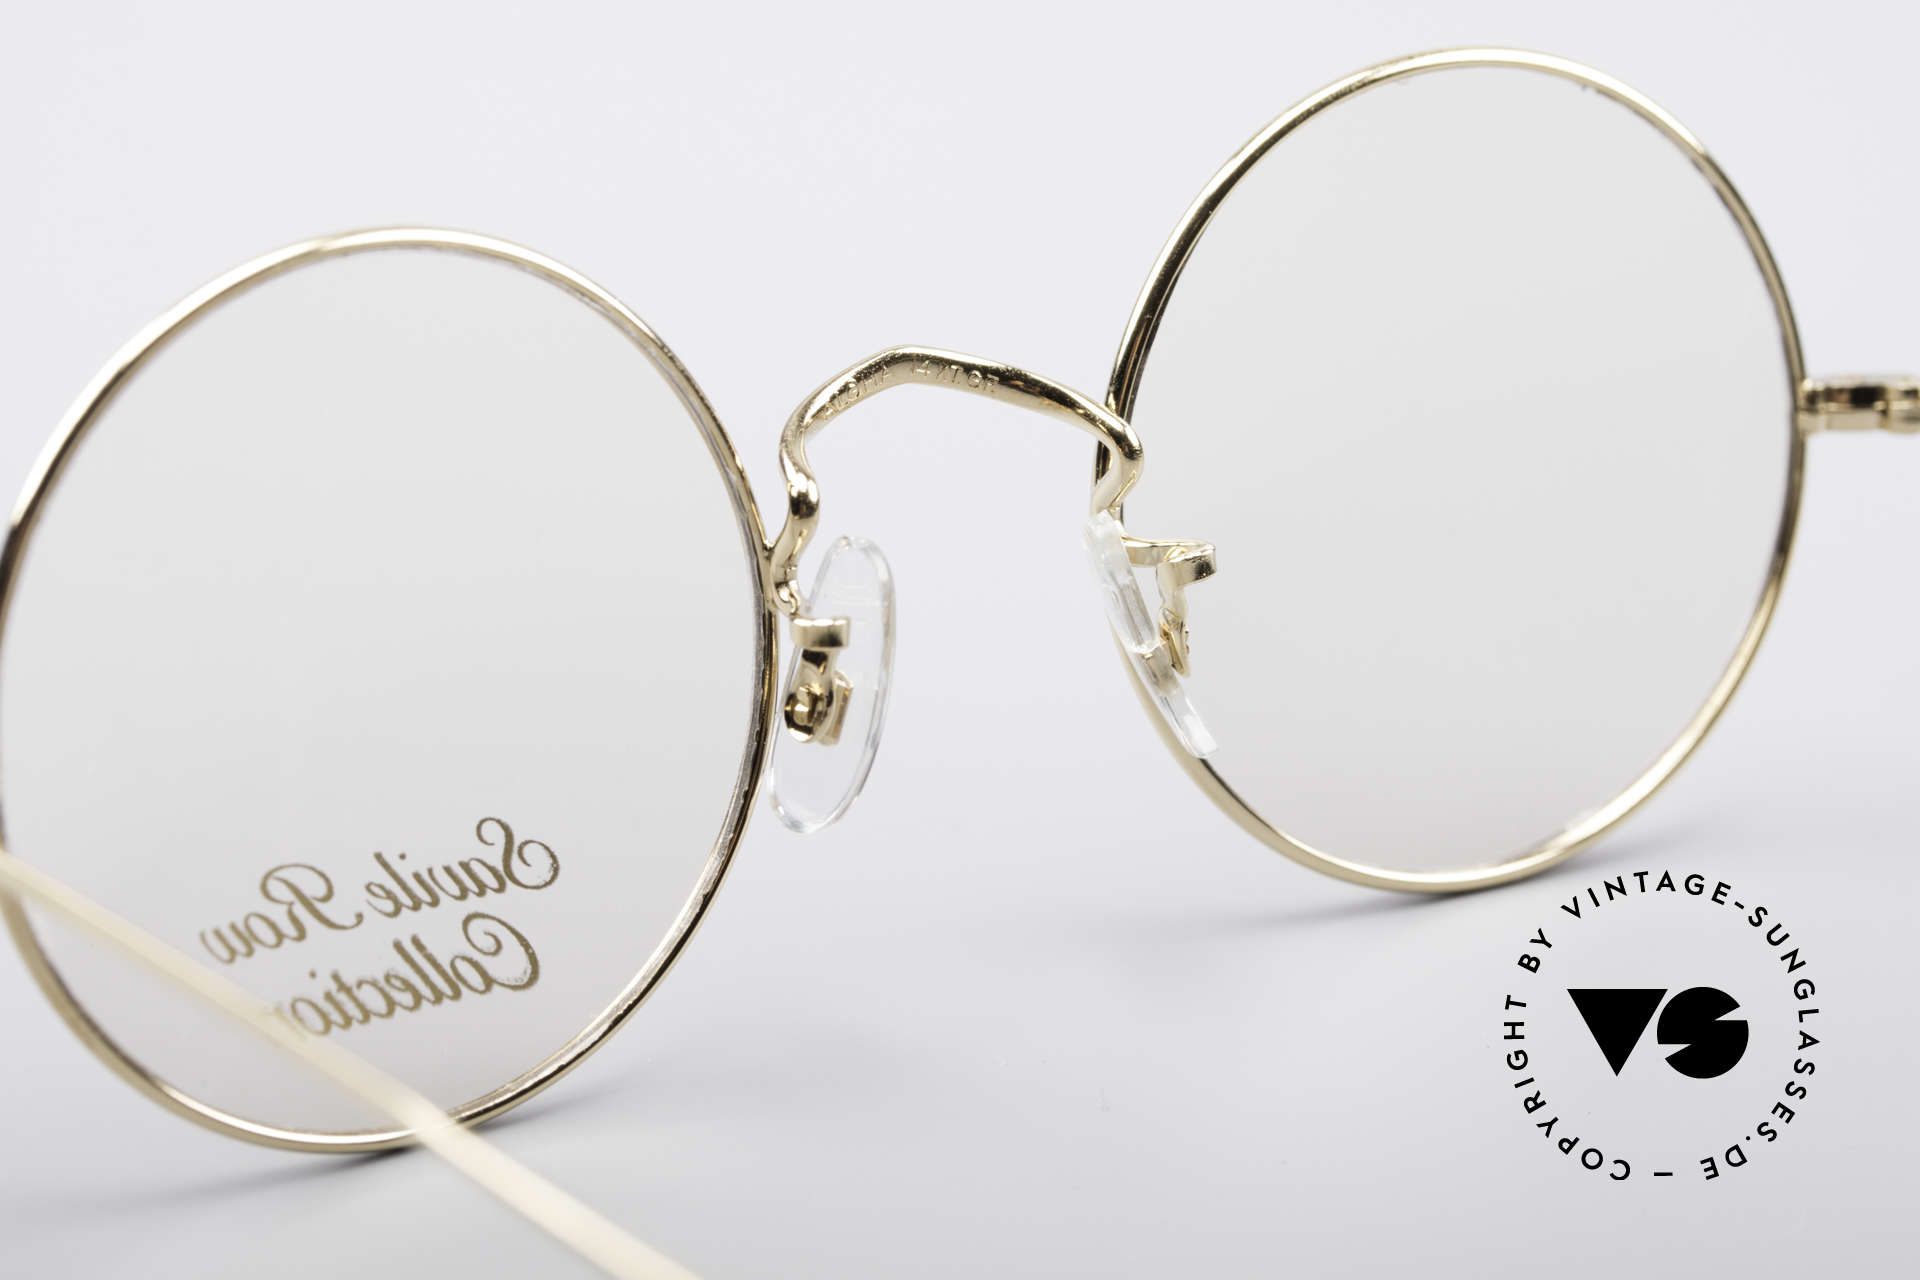 Savile Row Round 44/20 14kt Gold Frame, frame: 18% Nickel-Silver with a skin of 14kt gold, Made for Men and Women